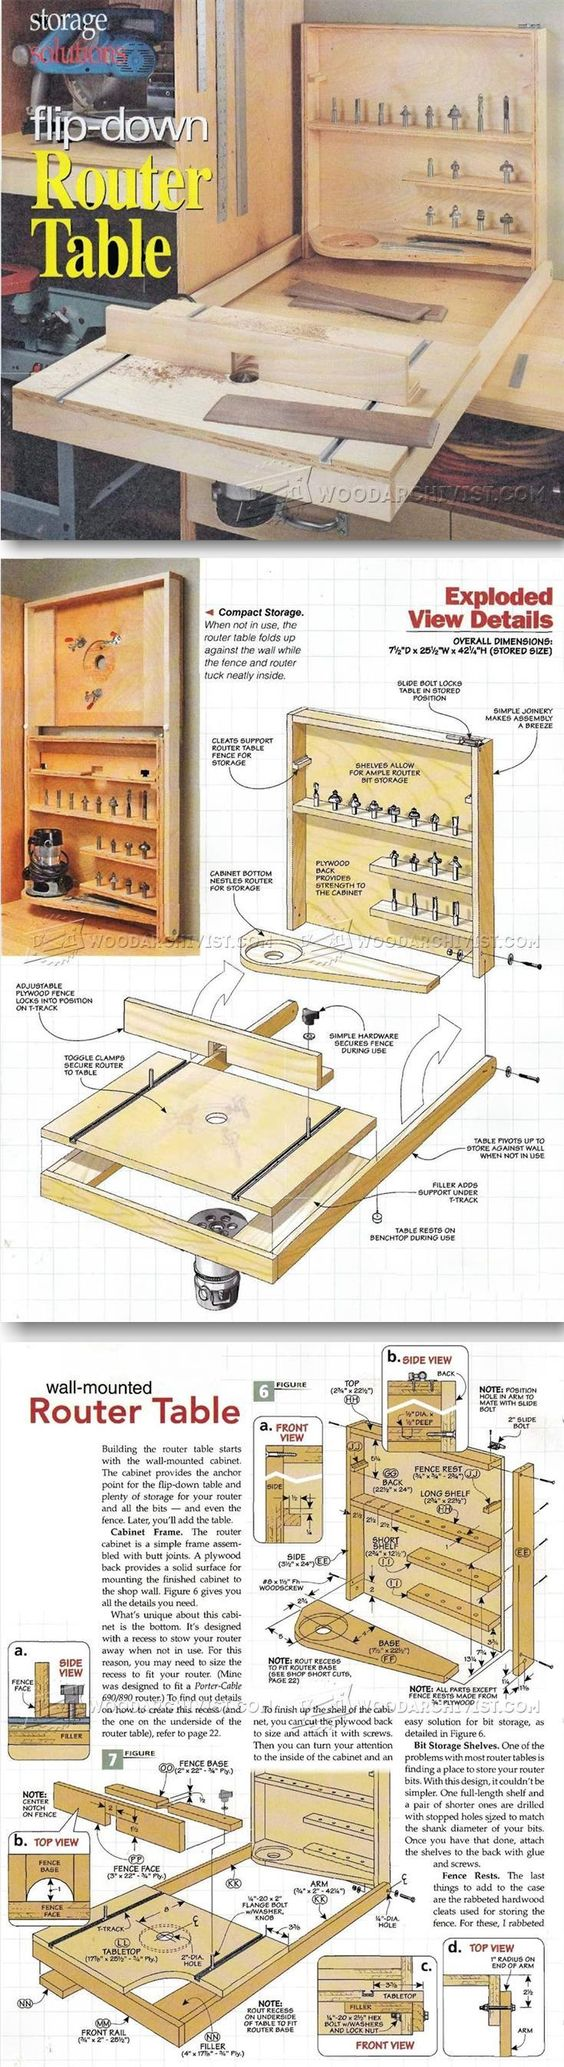 Fold down router table plans router tips jigs and fixtures fold down router table plans router tips jigs and fixtures woodarchivist keyboard keysfo Image collections